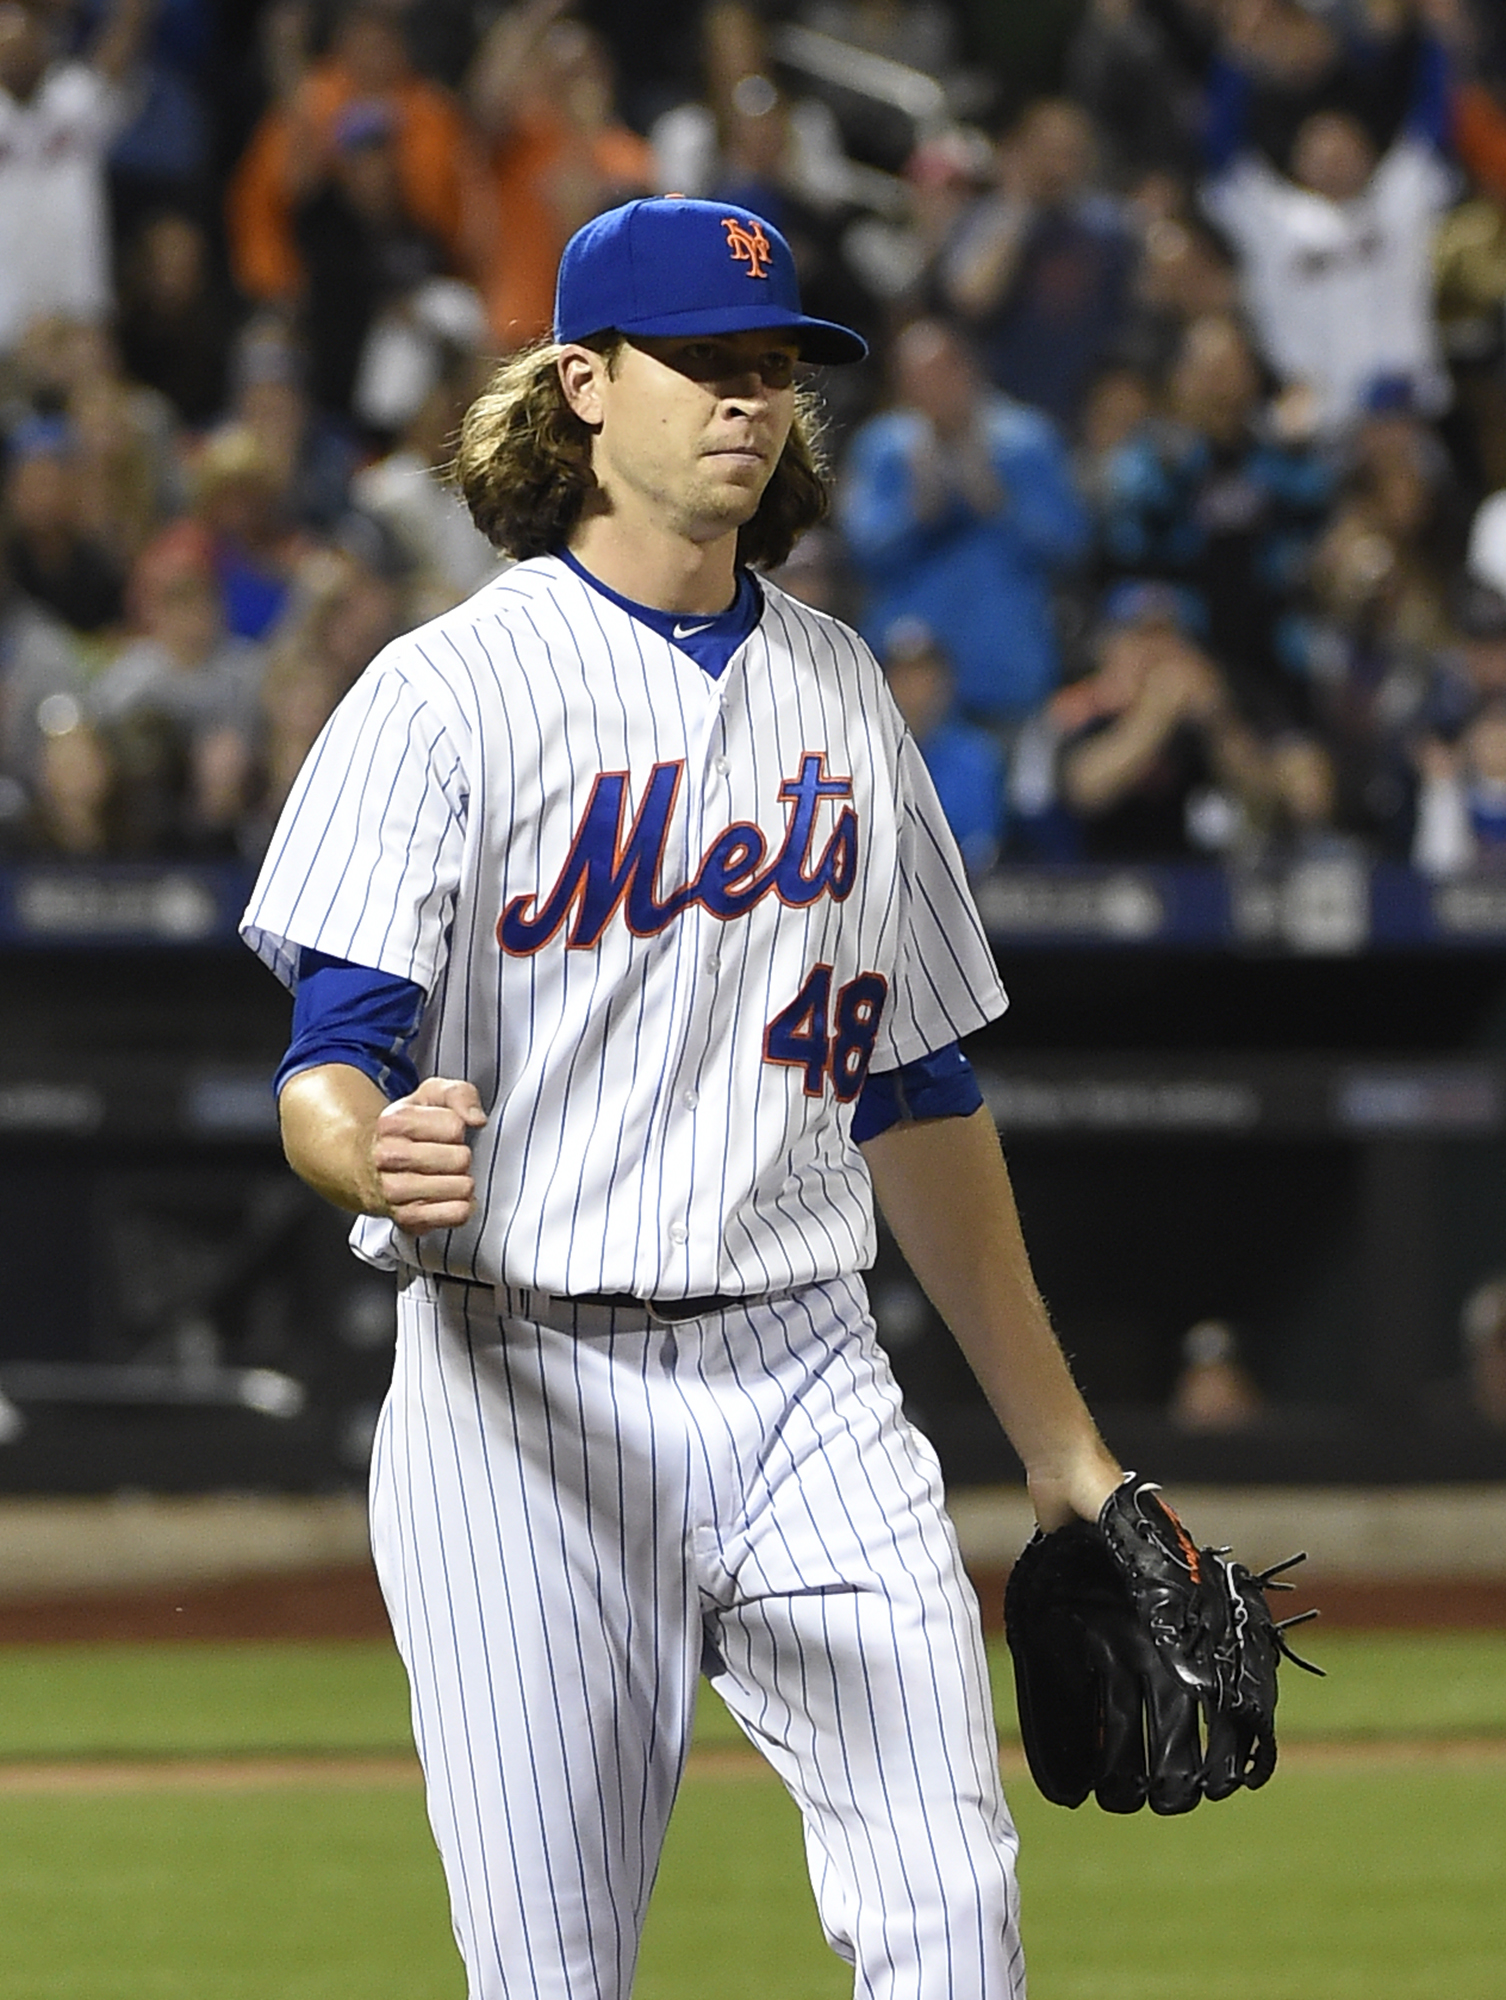 New York Mets starting pitcher Jacob deGrom (48) pumps his fist after first baseman Lucas Duda caught Miami Marlins' Martin Prado's foul ball for the third out that left two runners on base in the sixth inning of a baseball game at Citi Field on Saturday,